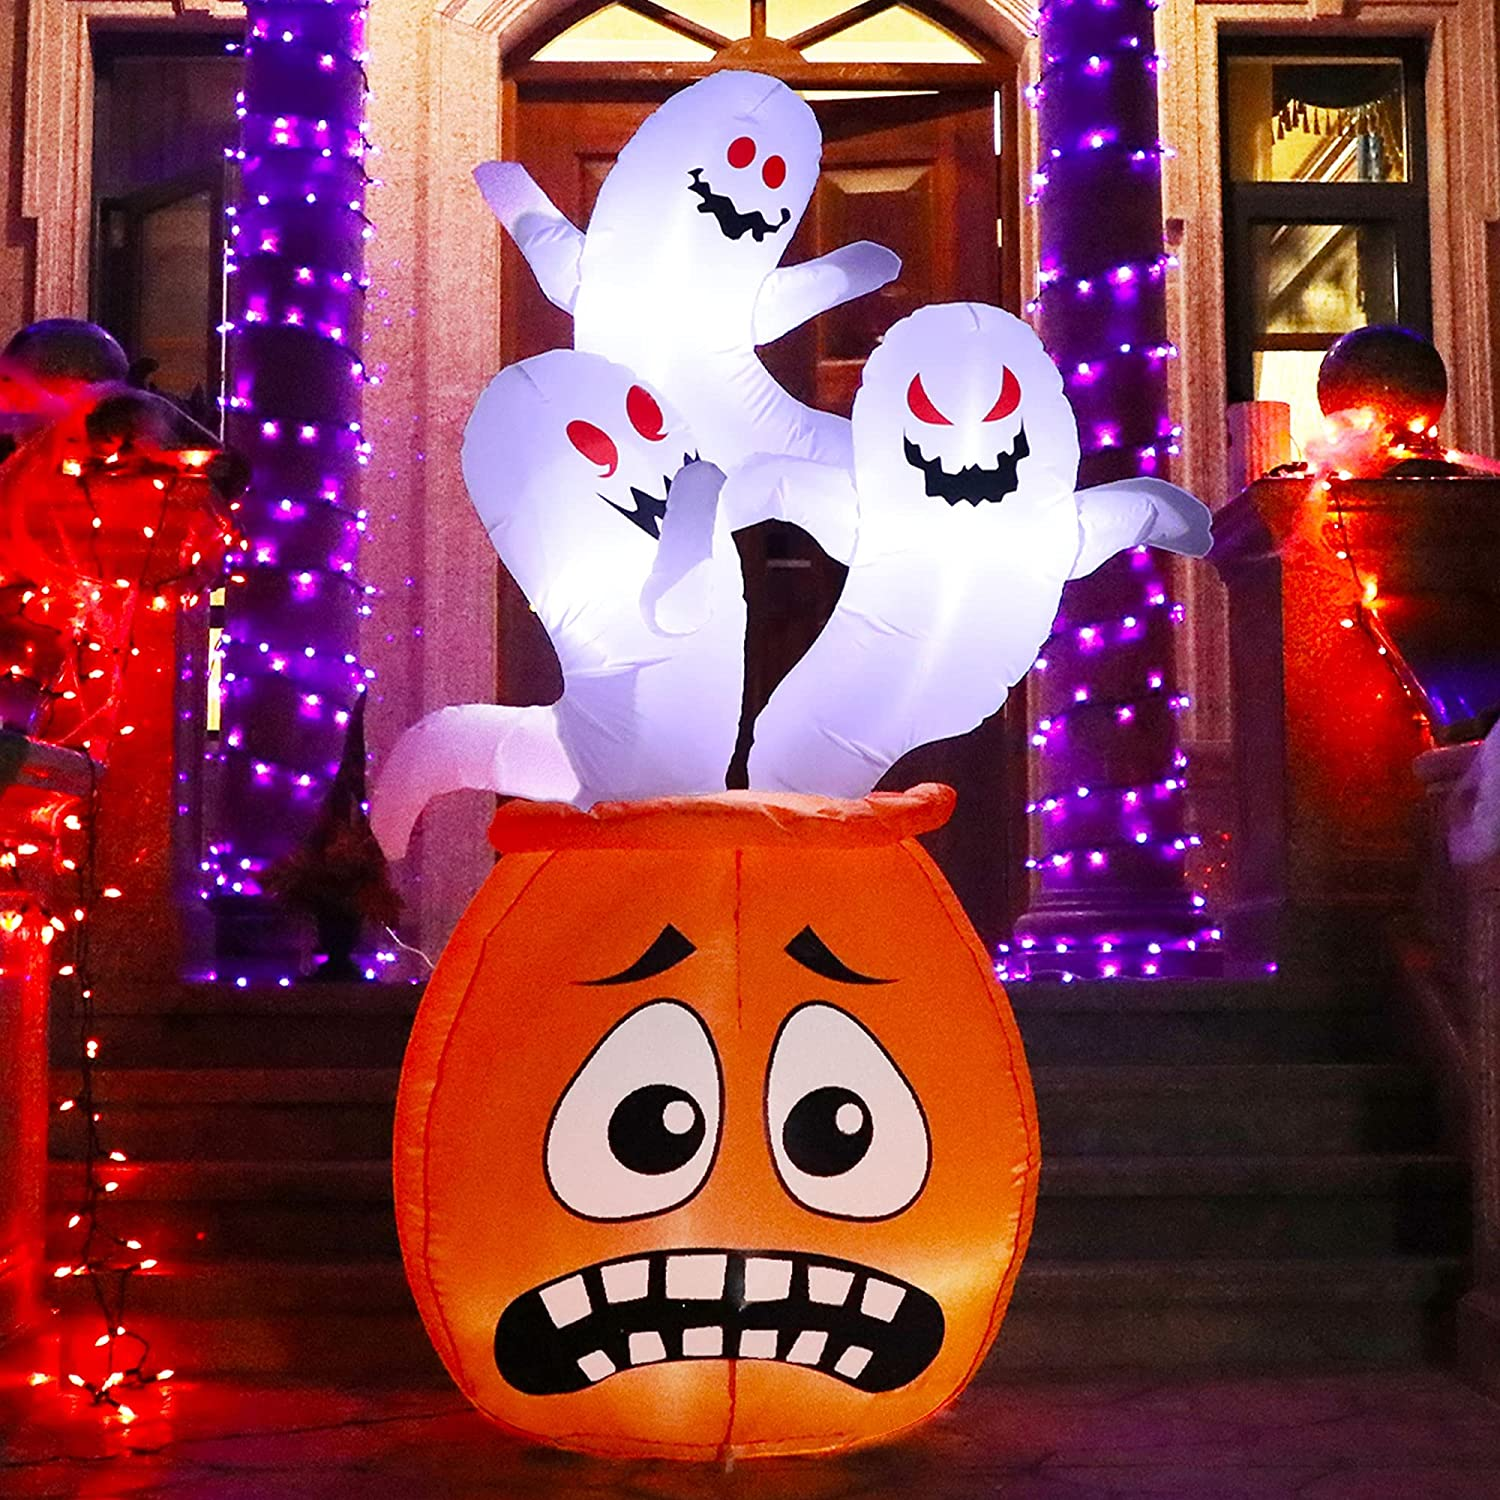 Joliyoou Halloween Blow Up Yard Decoration, 6 FT White LED Lighted Inflatable Pumpkin with Three Ghosts Standing On, Inflatable Holiday Yard Lawn Garden Decorations for Indoor and Outdoor